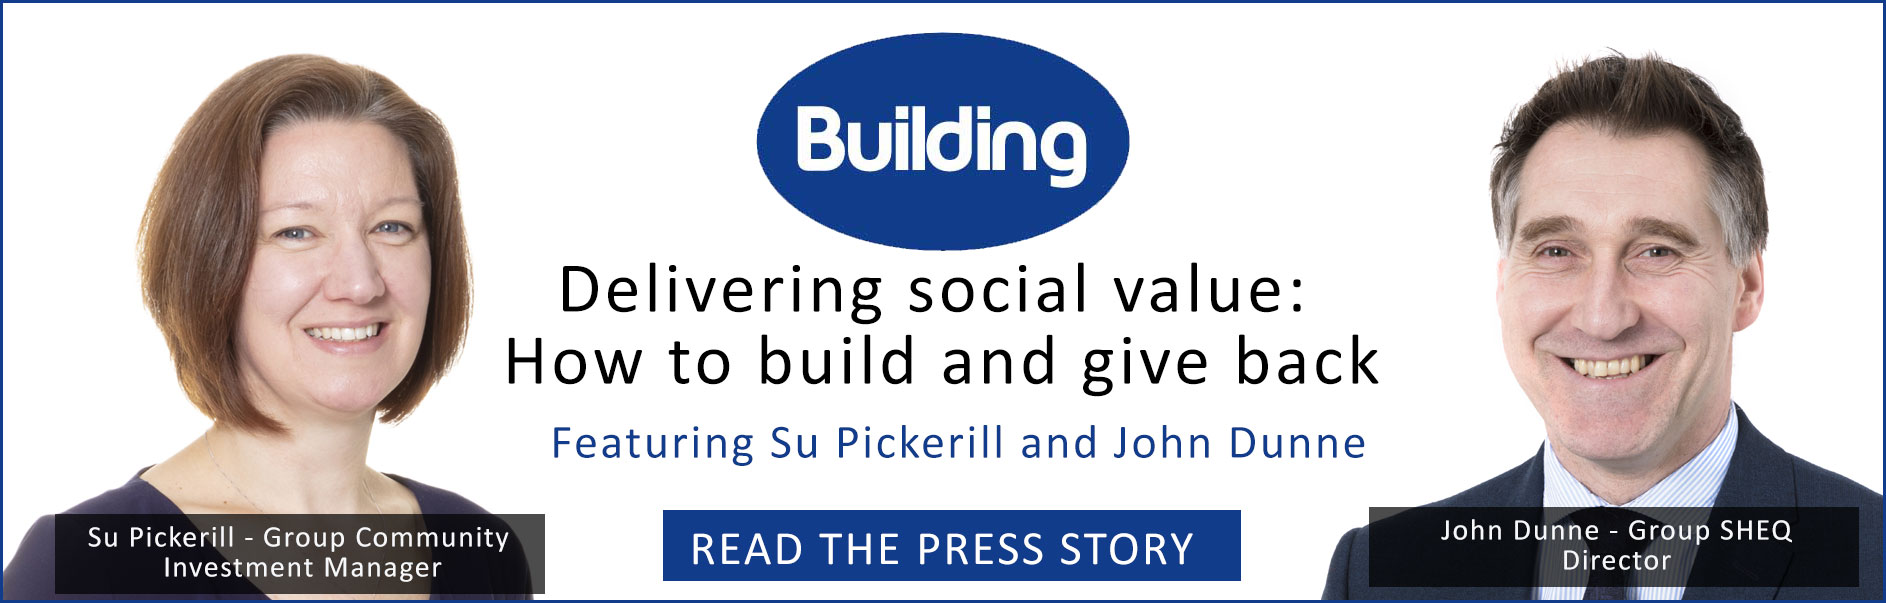 Delivering social value - How to build and give back